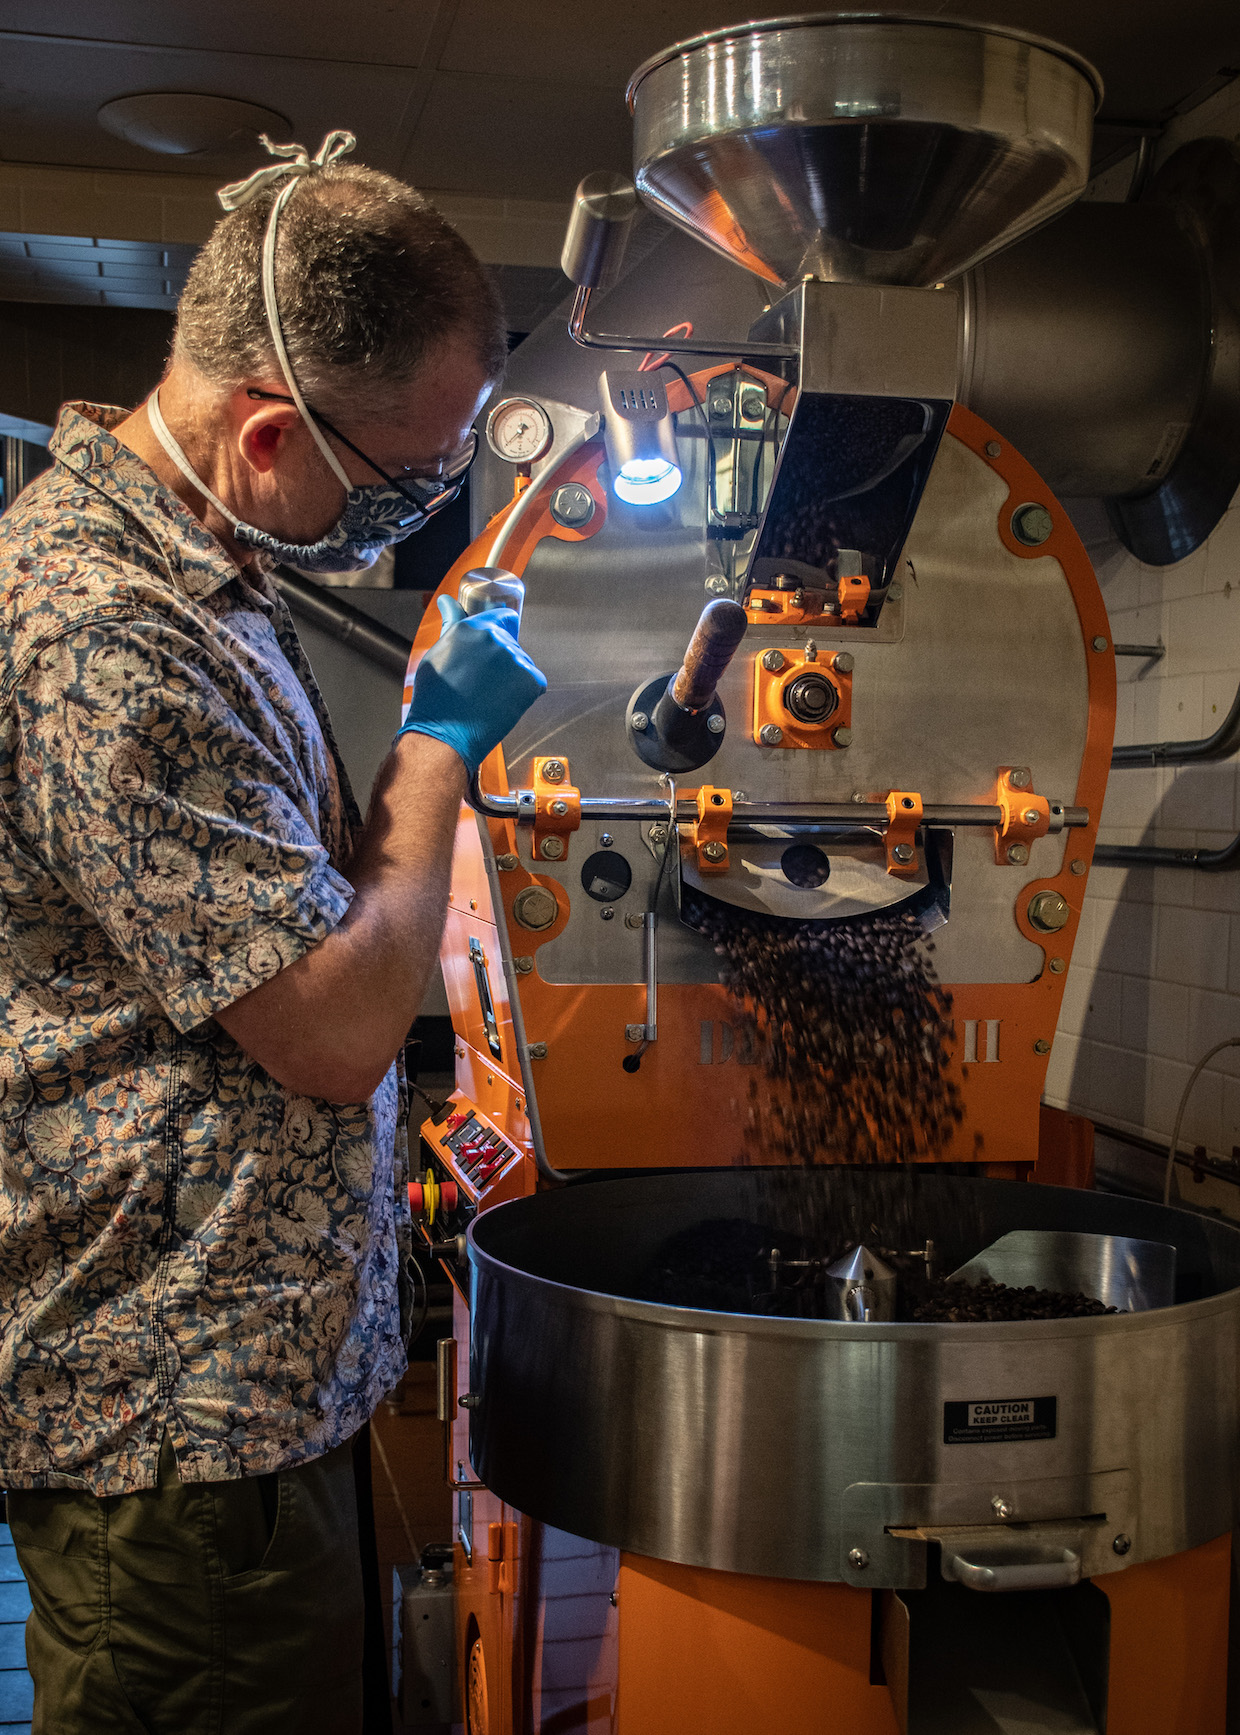 A Rising Tide Breakwater Roasters Lifts The Coffee Scene In Gloucesterdaily Coffee News By Roast Magazine